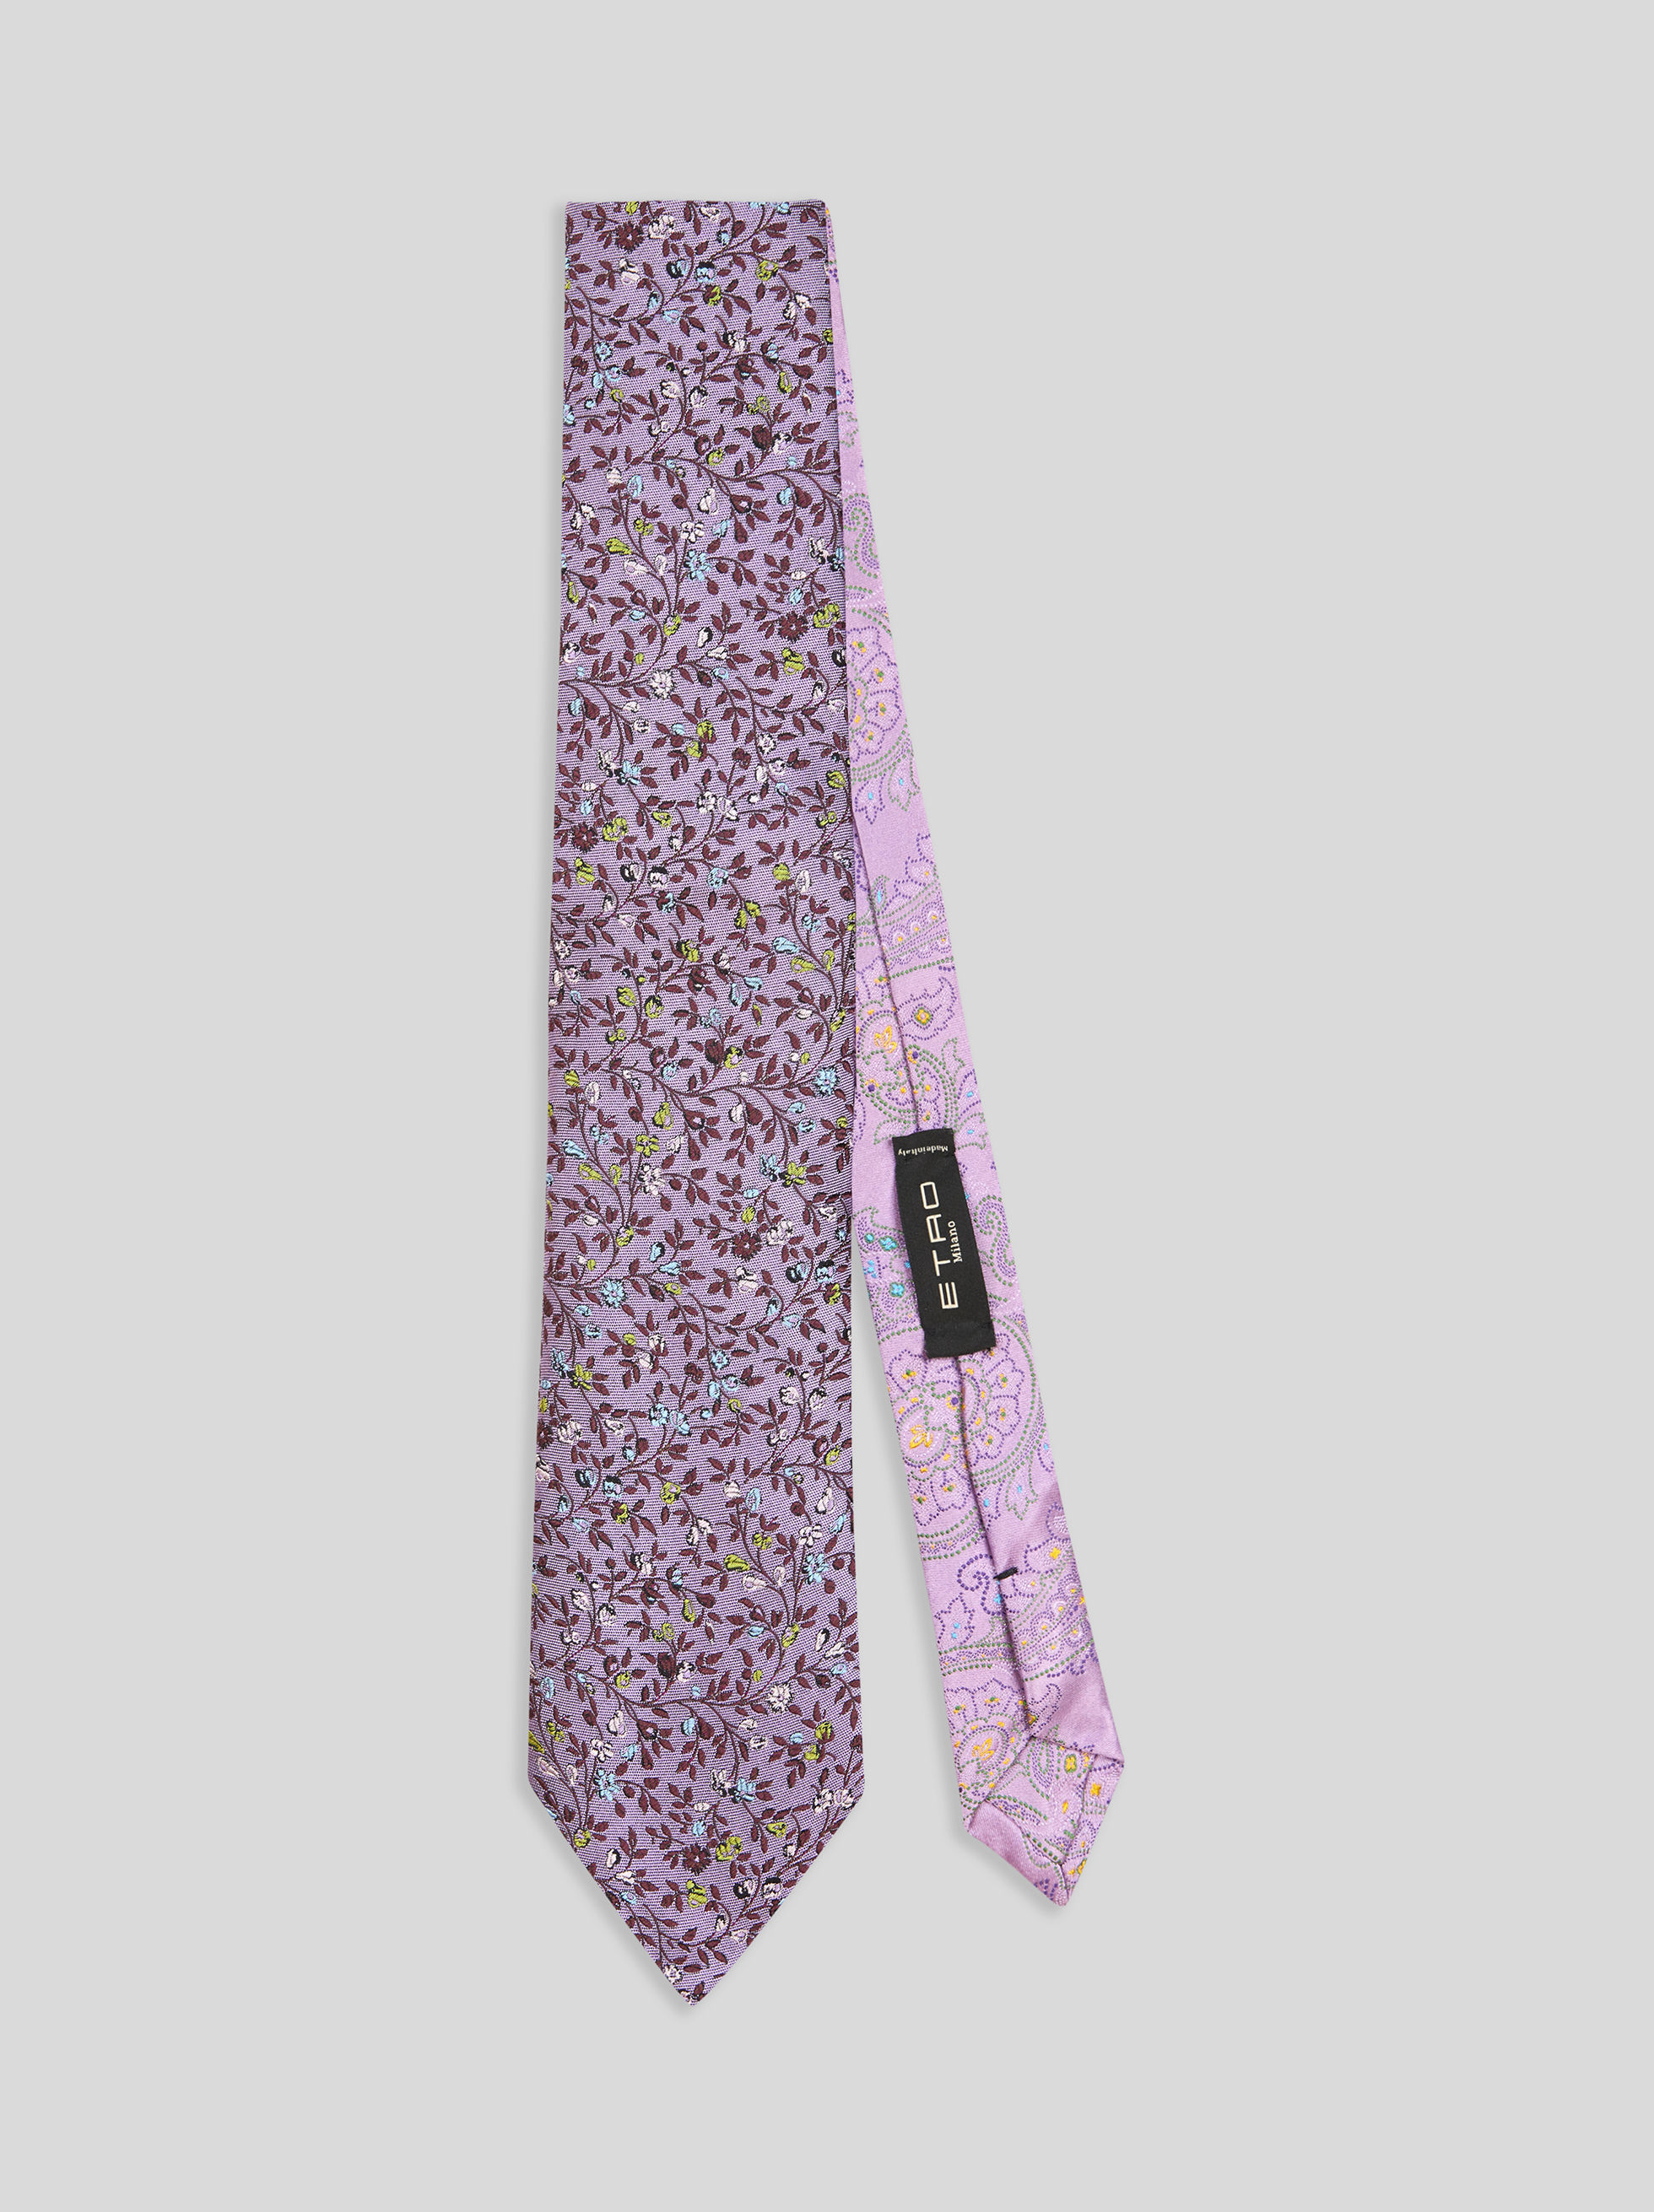 FLORAL PAISLEY TWO-FBRIC TIE